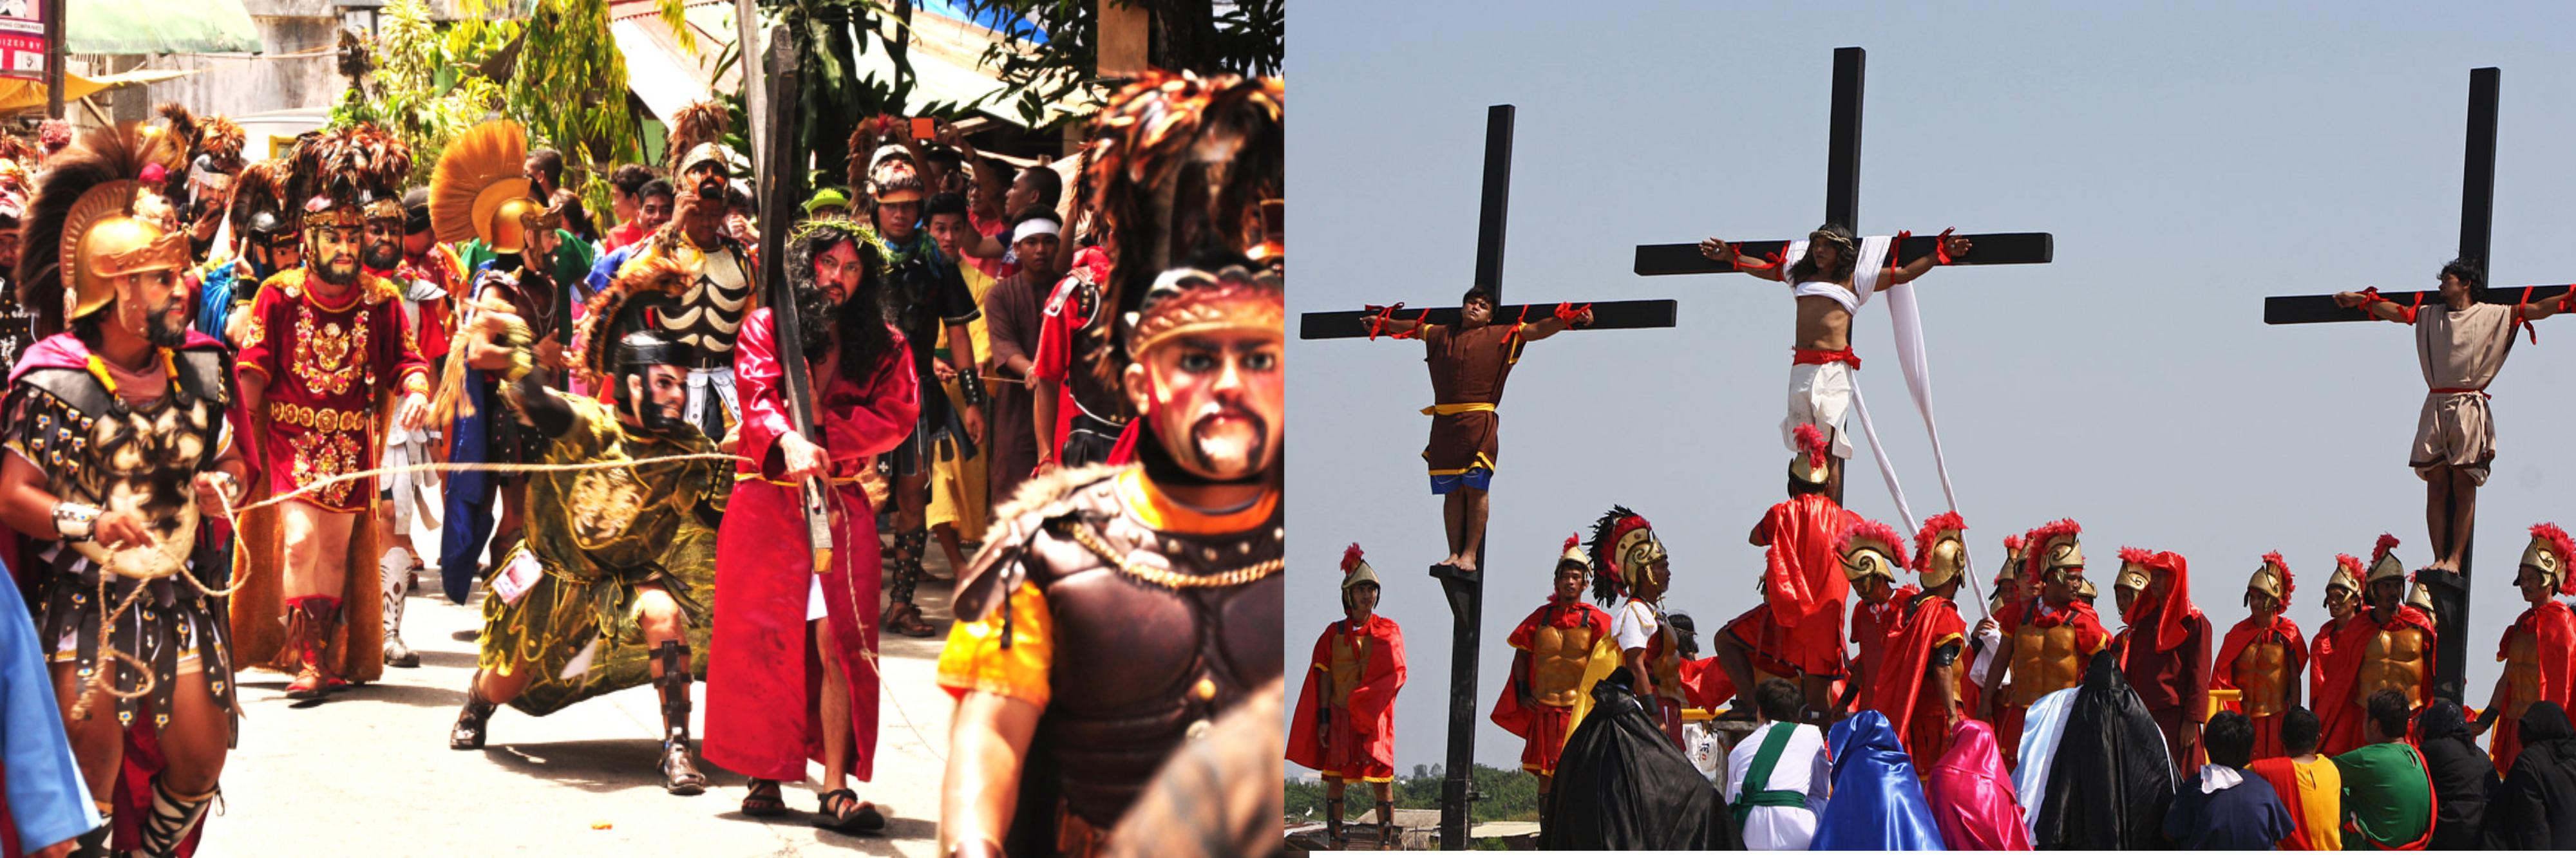 Three of the most popular Holy Week Celebration in the Philippines. Images via Wikipedia and lakwatserongsulit.wordpress.com